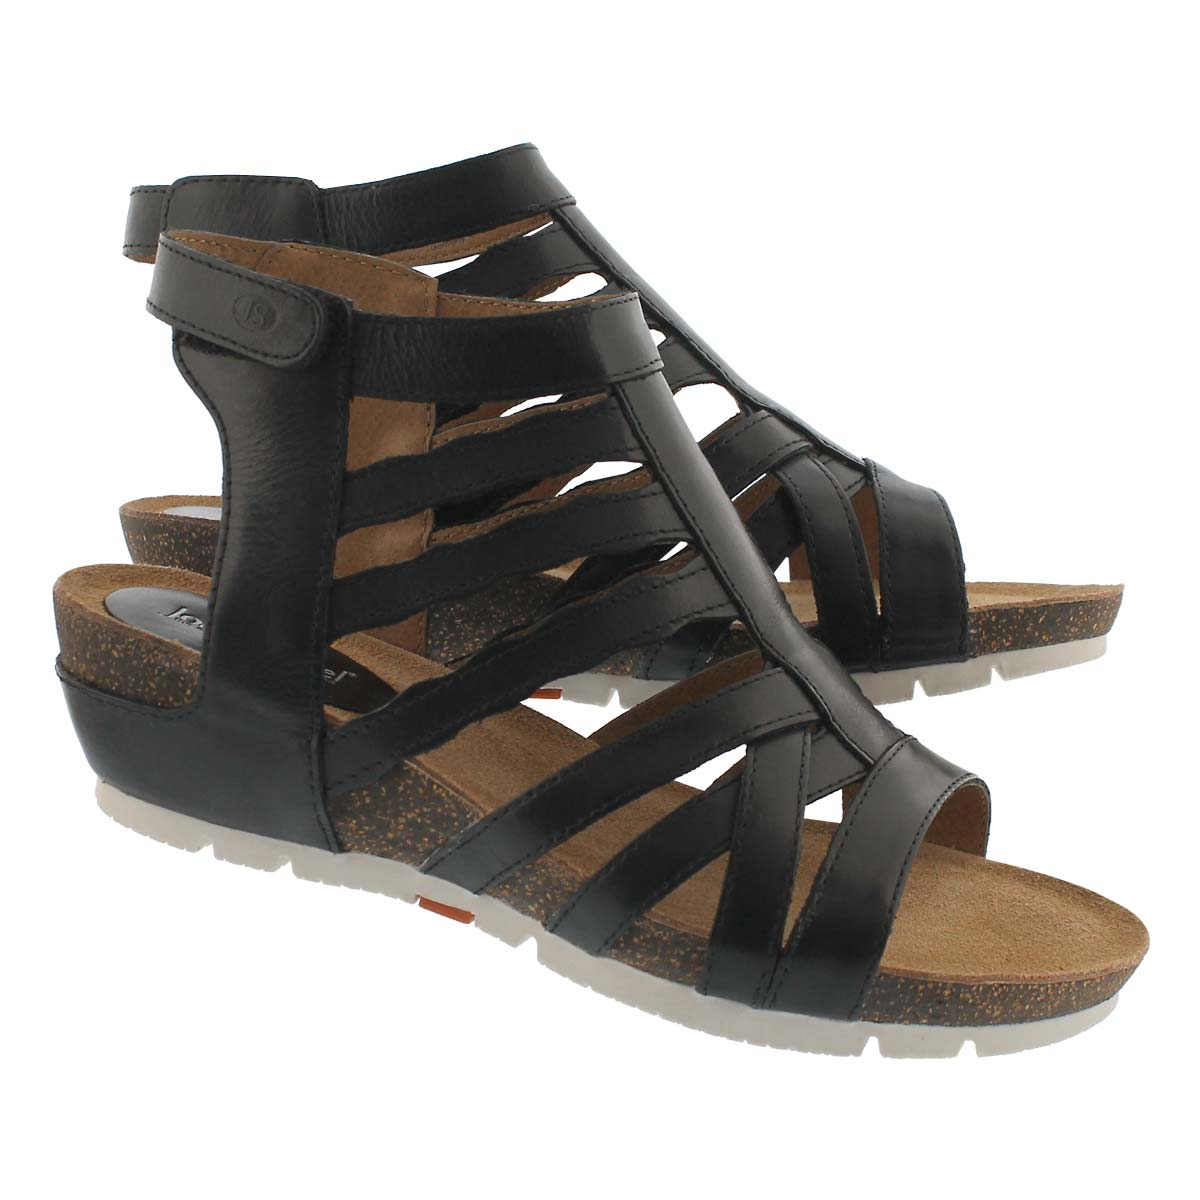 Lds Hailey 17 black dress wedge sandal